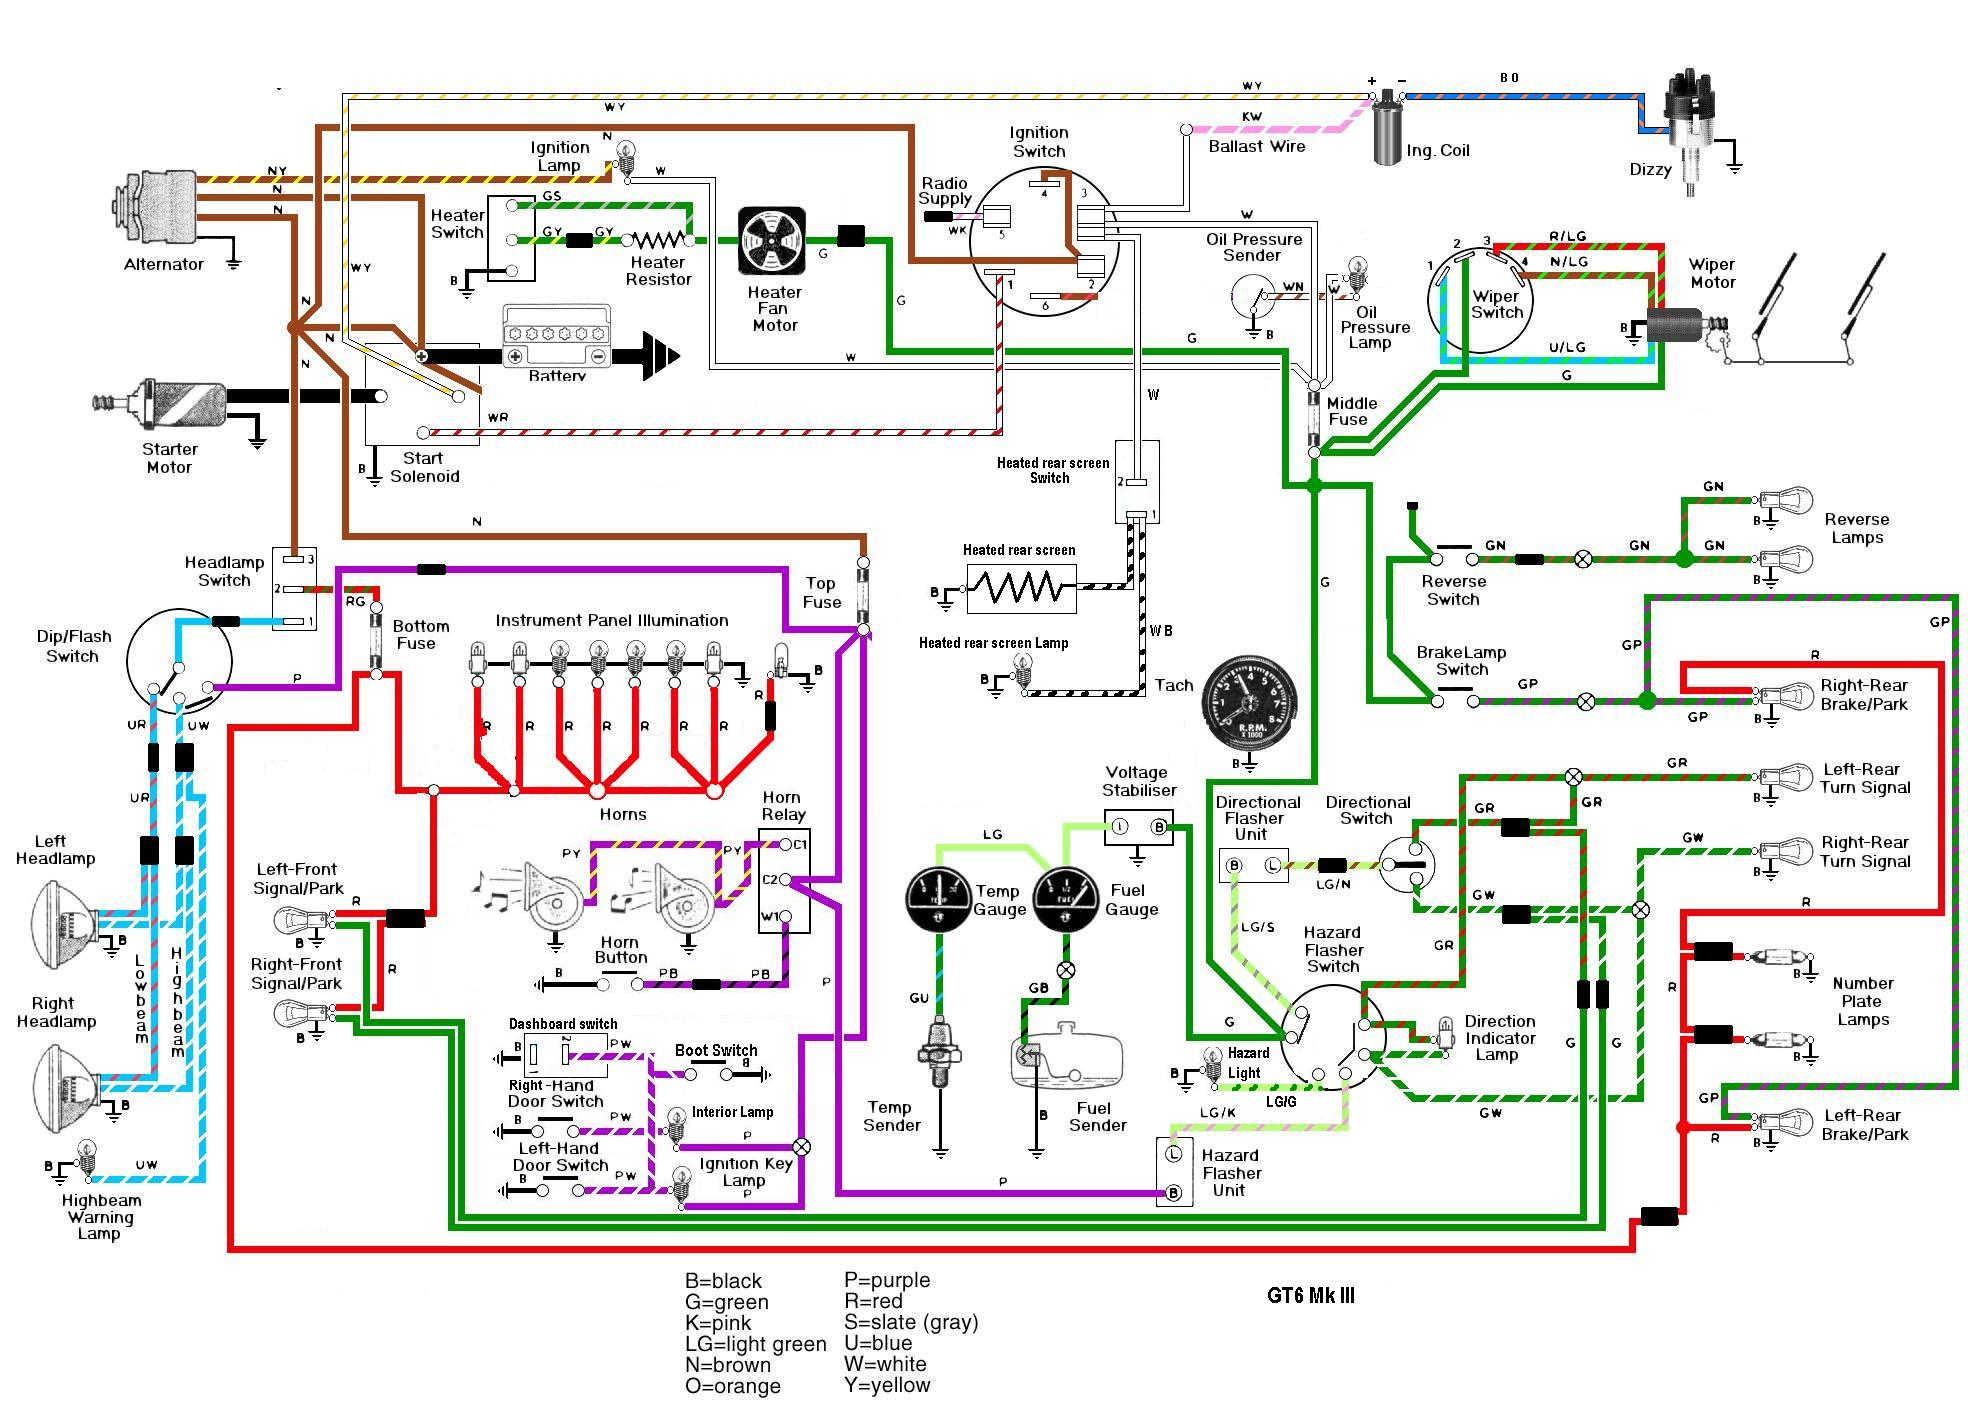 GT6MkIIIwiring mazda 6 alternator wiring diagram engine wiring diagram \u2022 wiring ford 1g alternator wiring diagram at gsmportal.co